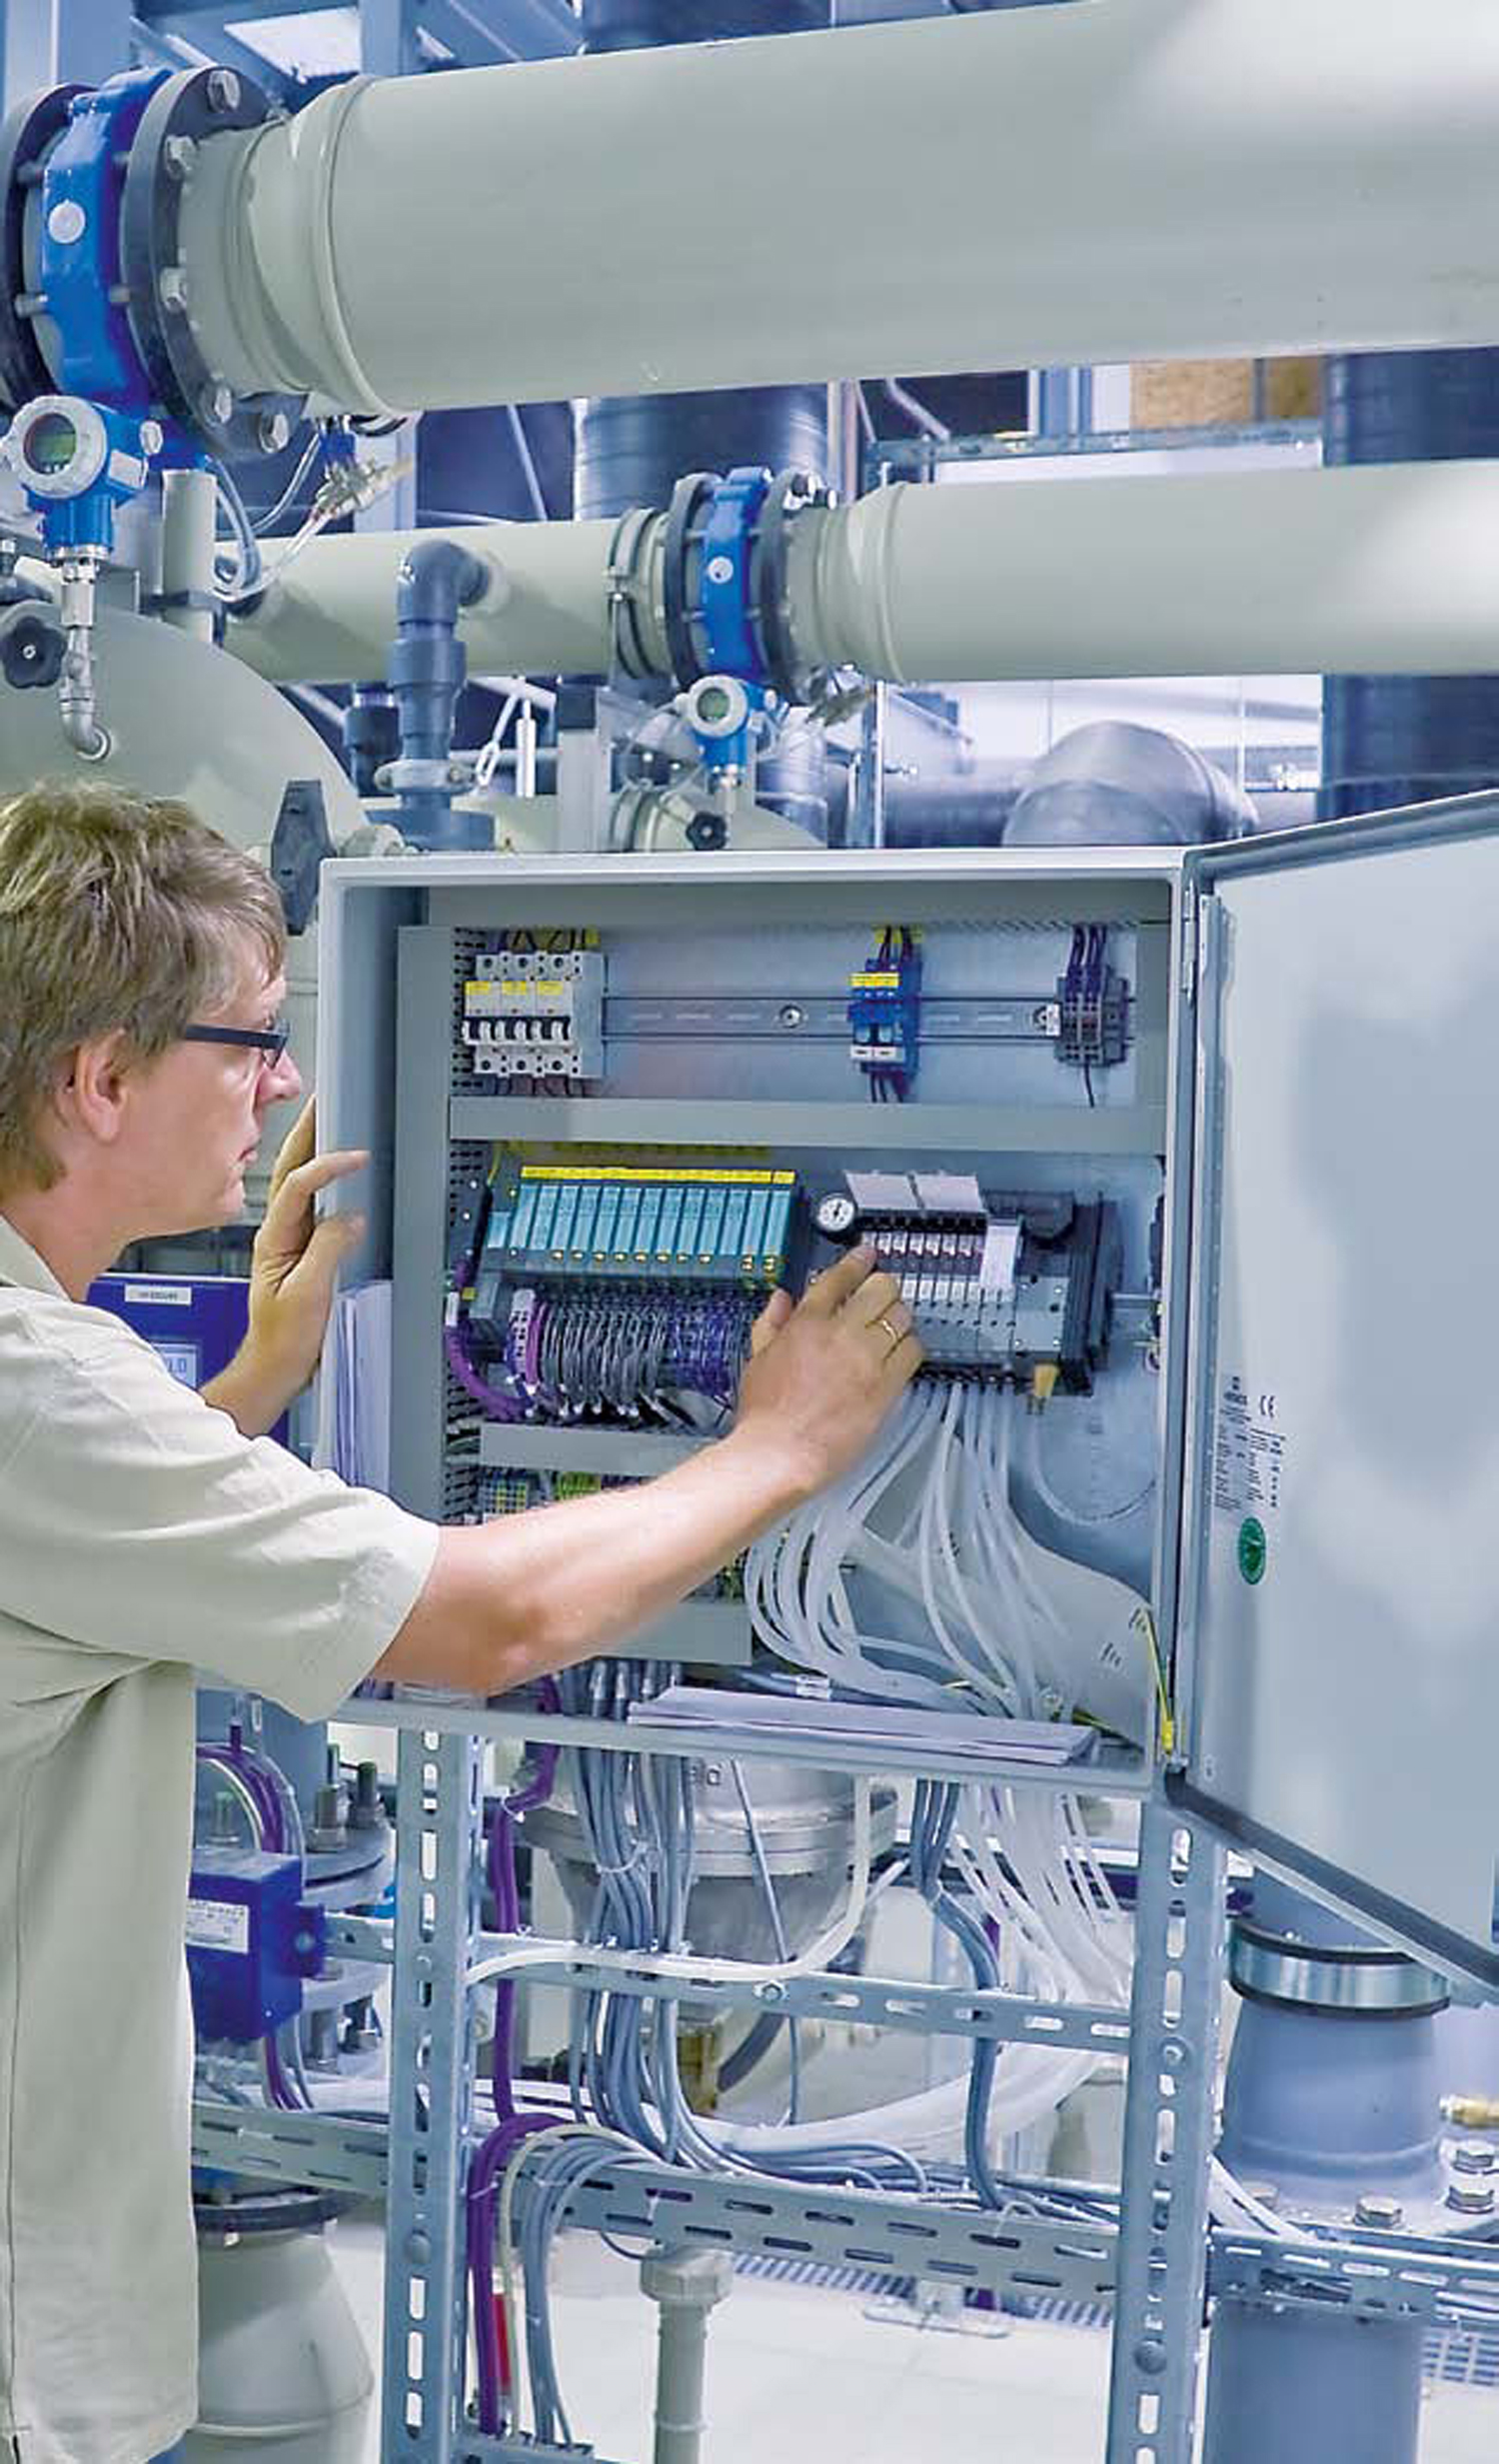 Pneumatic Control Automation Systems Tpm001 Engineer Live